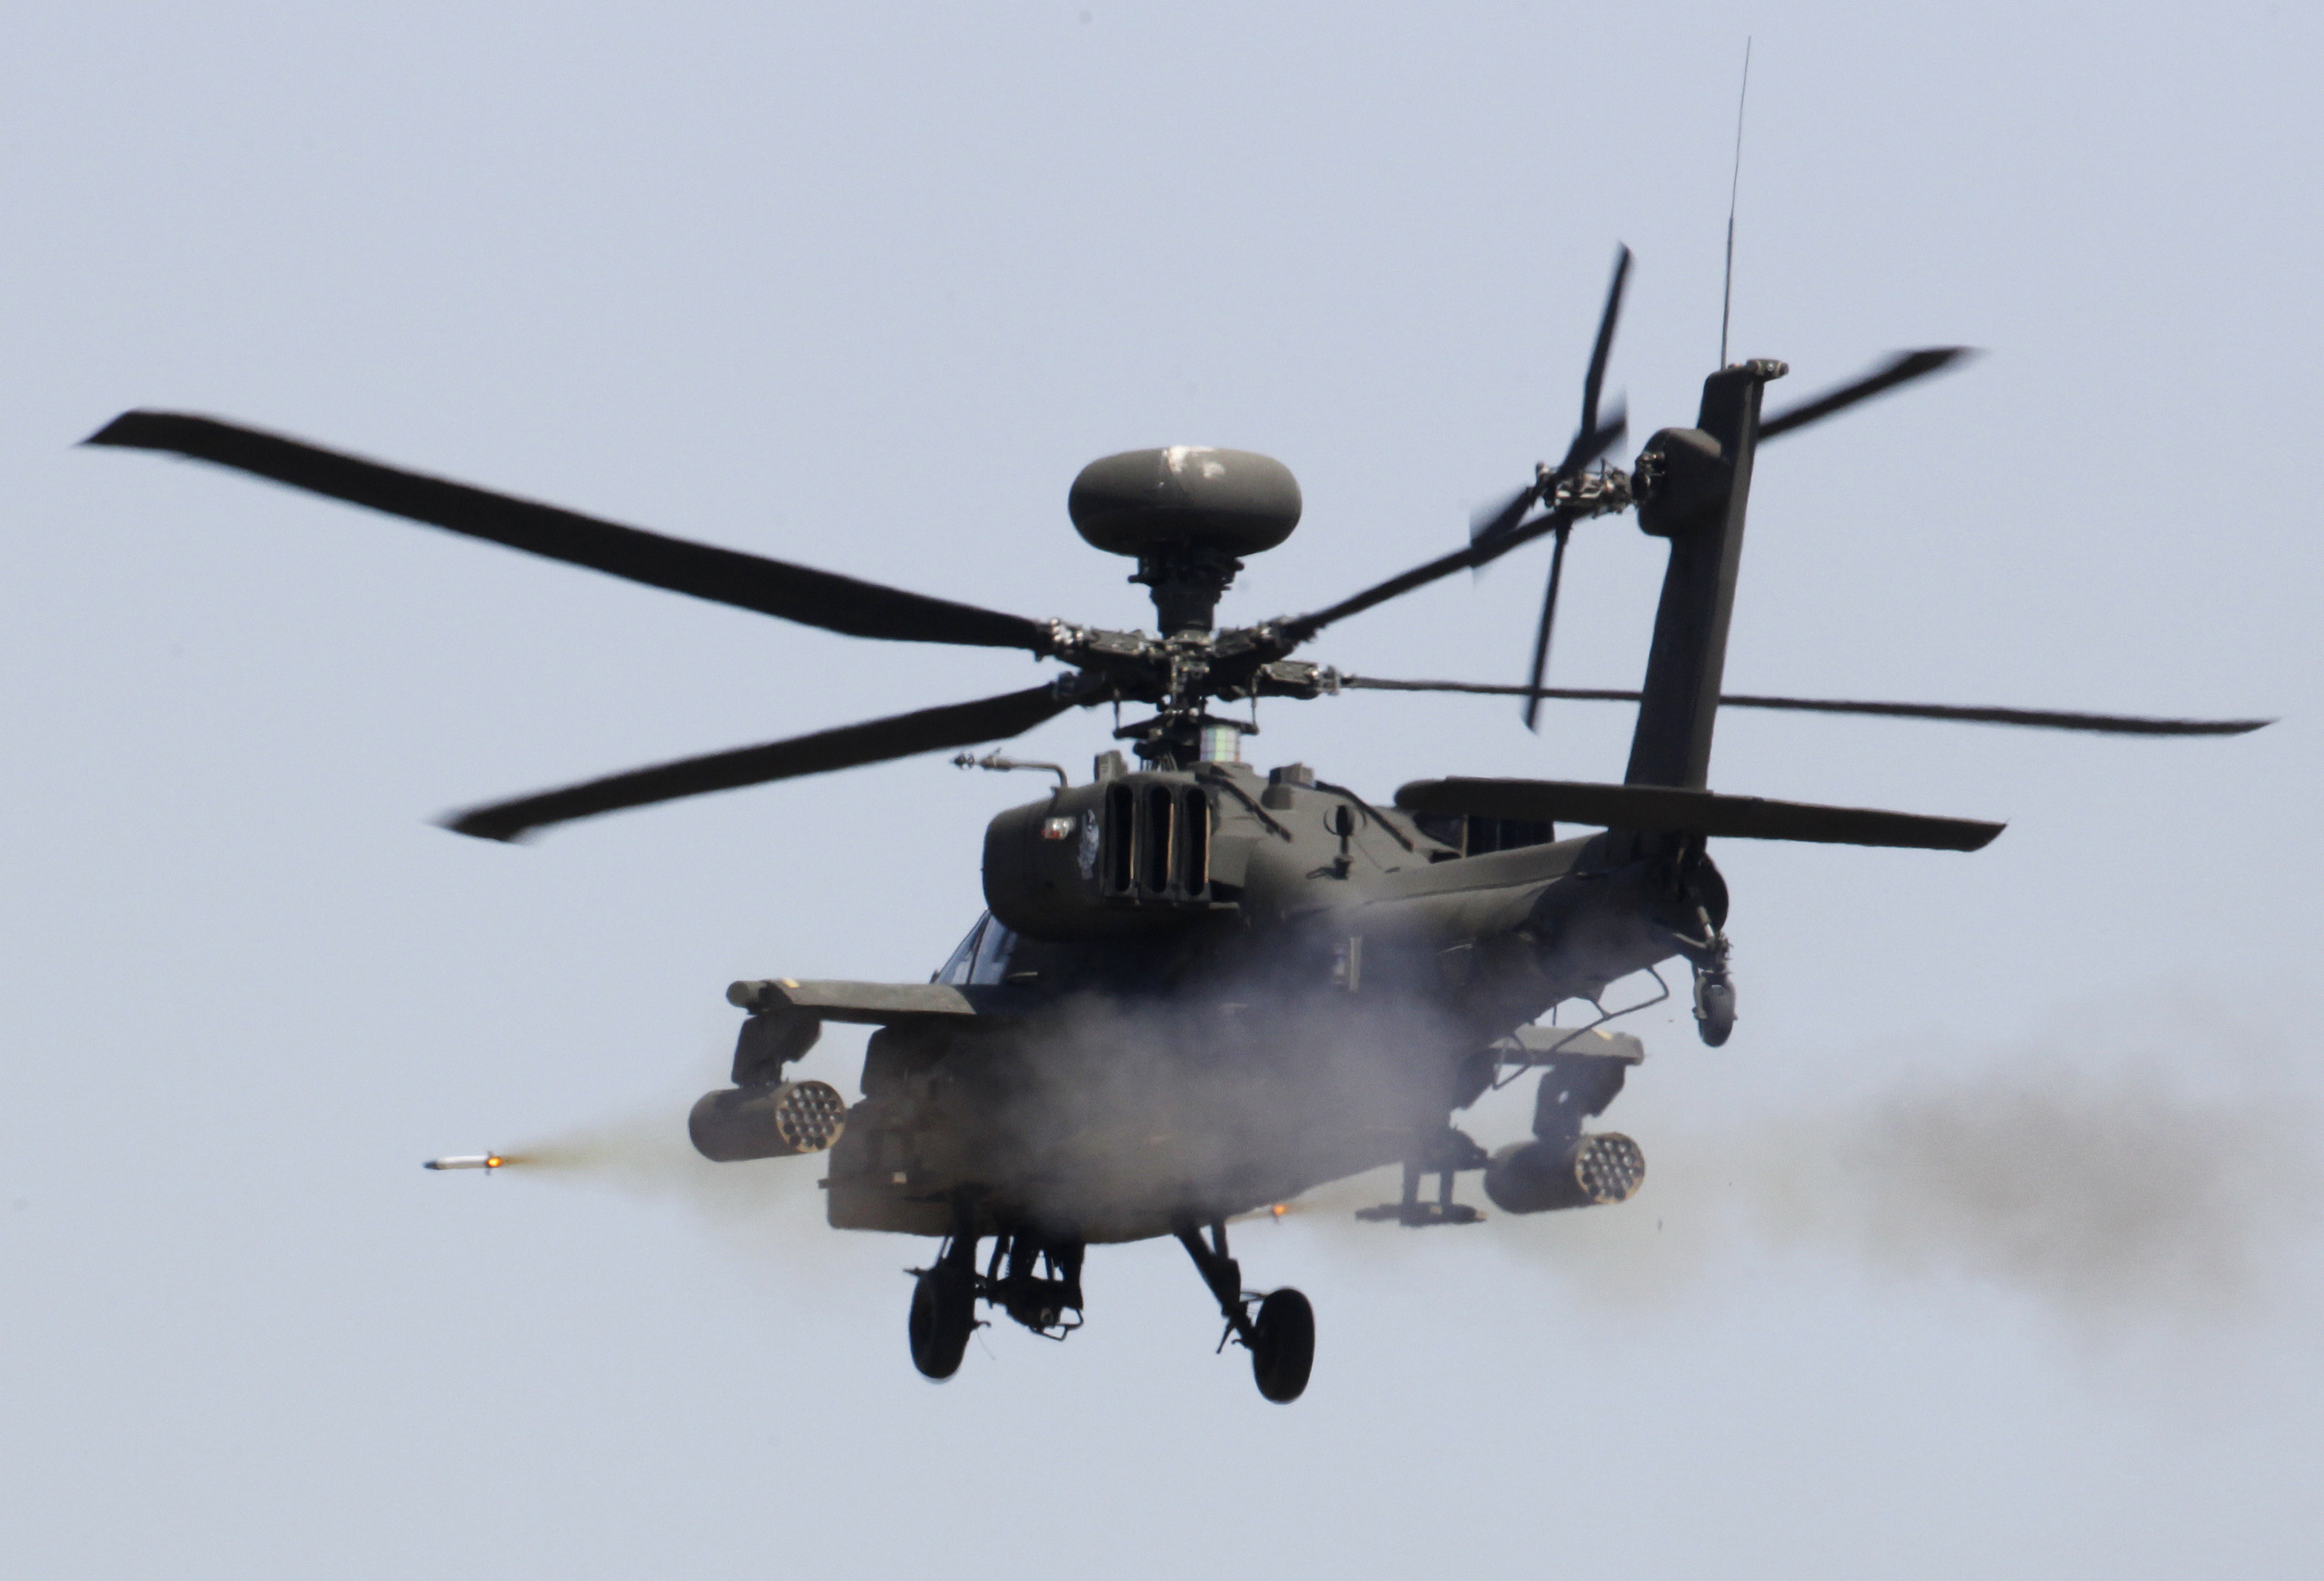 AH-64 Apache helicopters like this one arrived in Baghdad on Sunday.